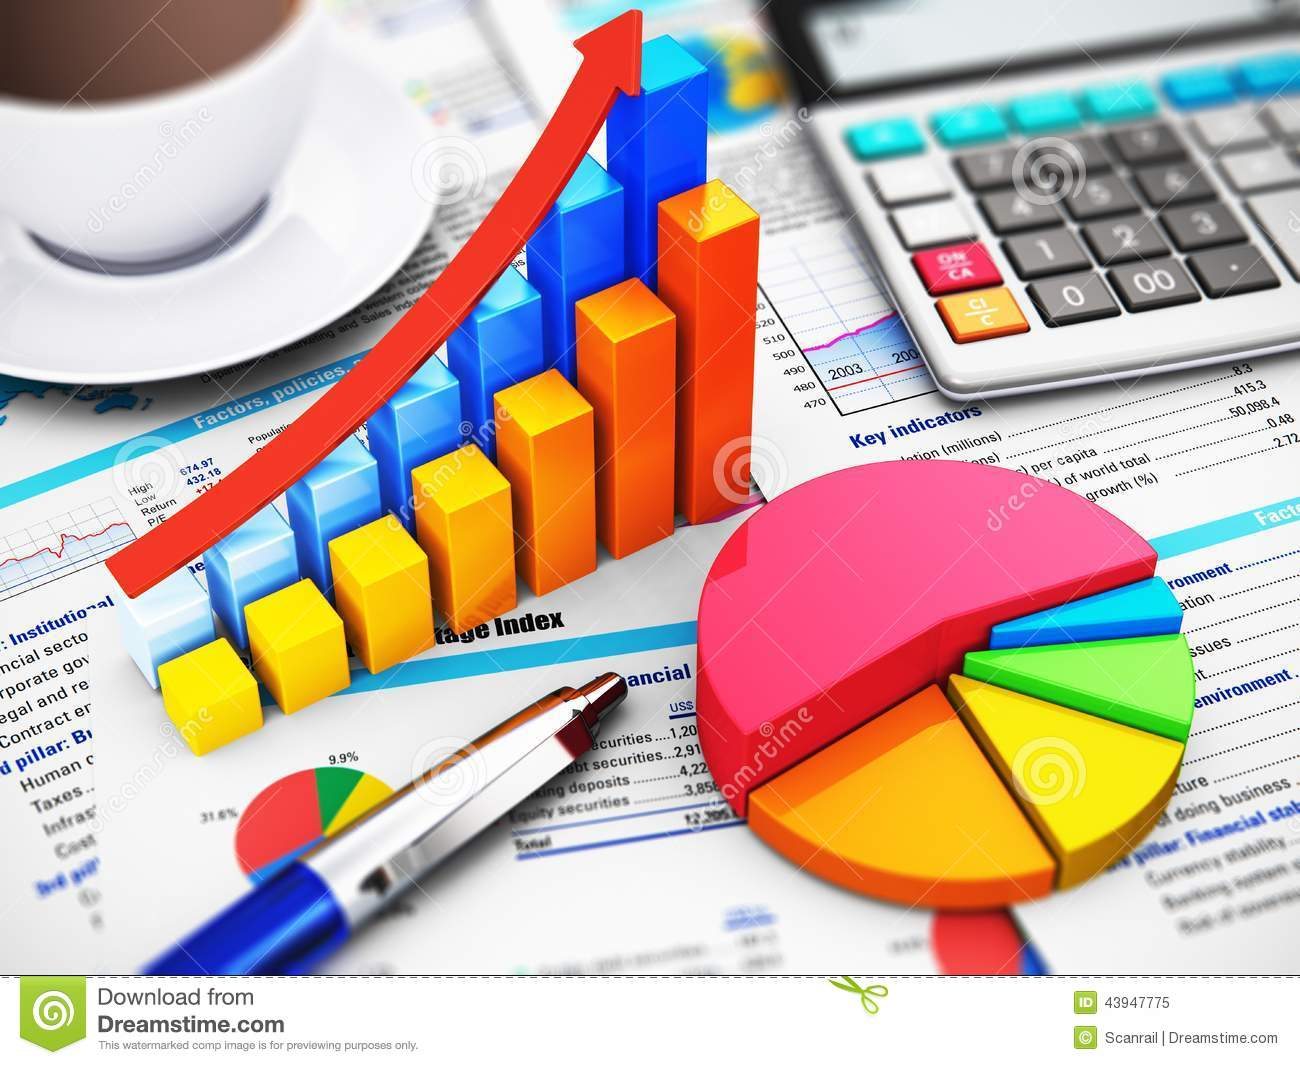 finance and accounting research Kforce is an award-winning professional staffing agency that provides strategic partnership in the areas of technology and finance & accounting.